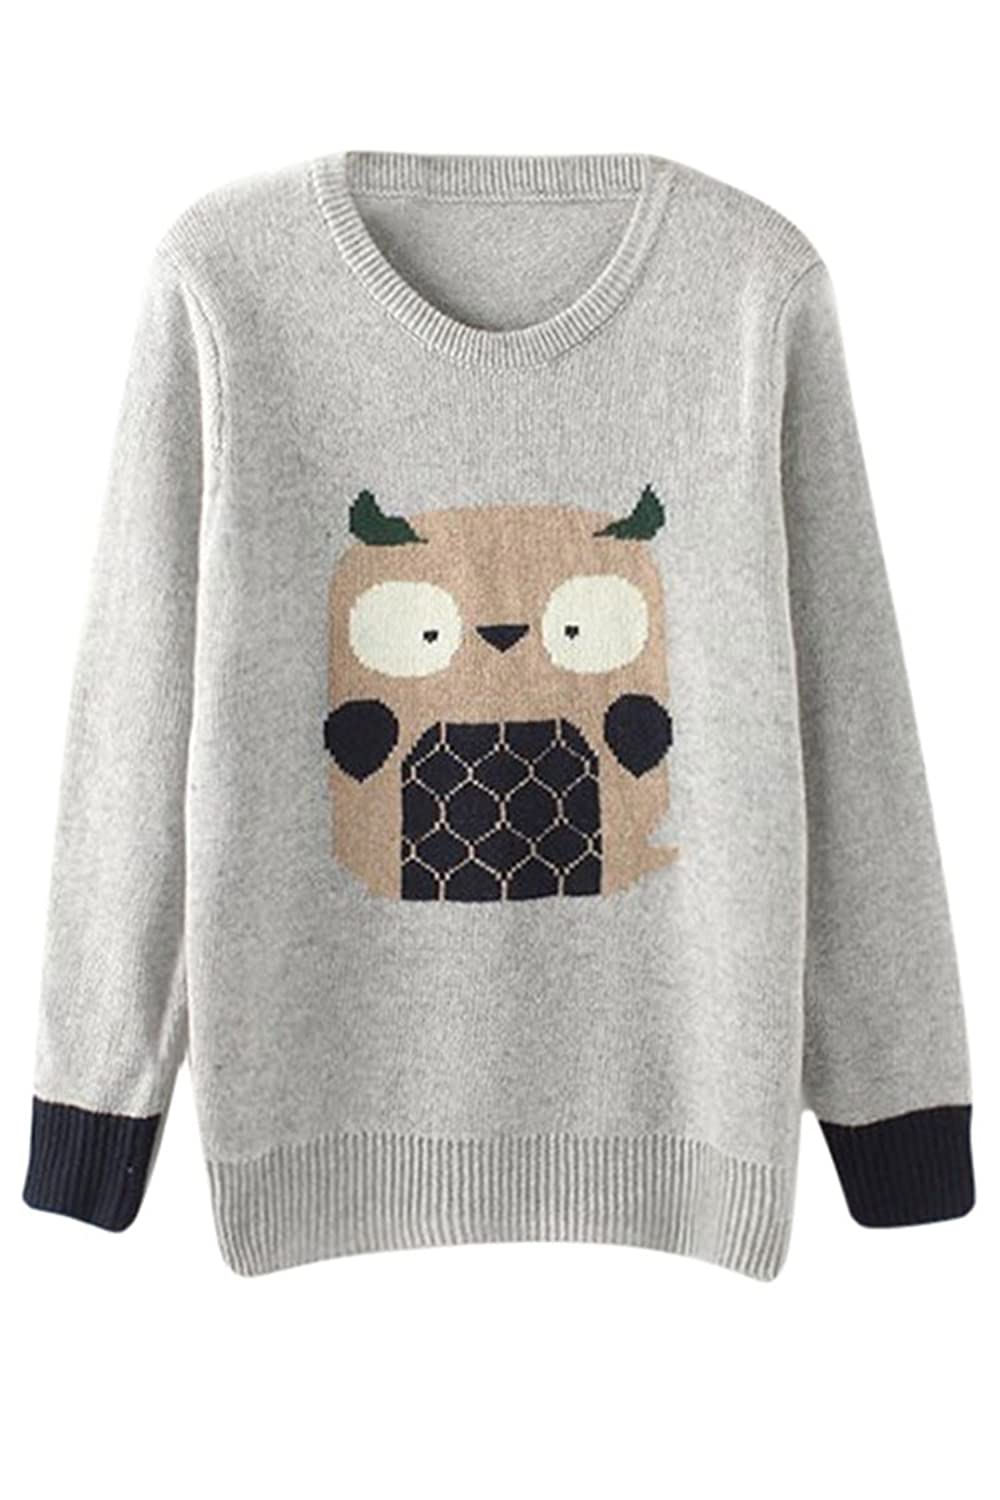 KAKALOT Women's Fashion Owl Print Oversize Knitted Pullover Sweater Jumper